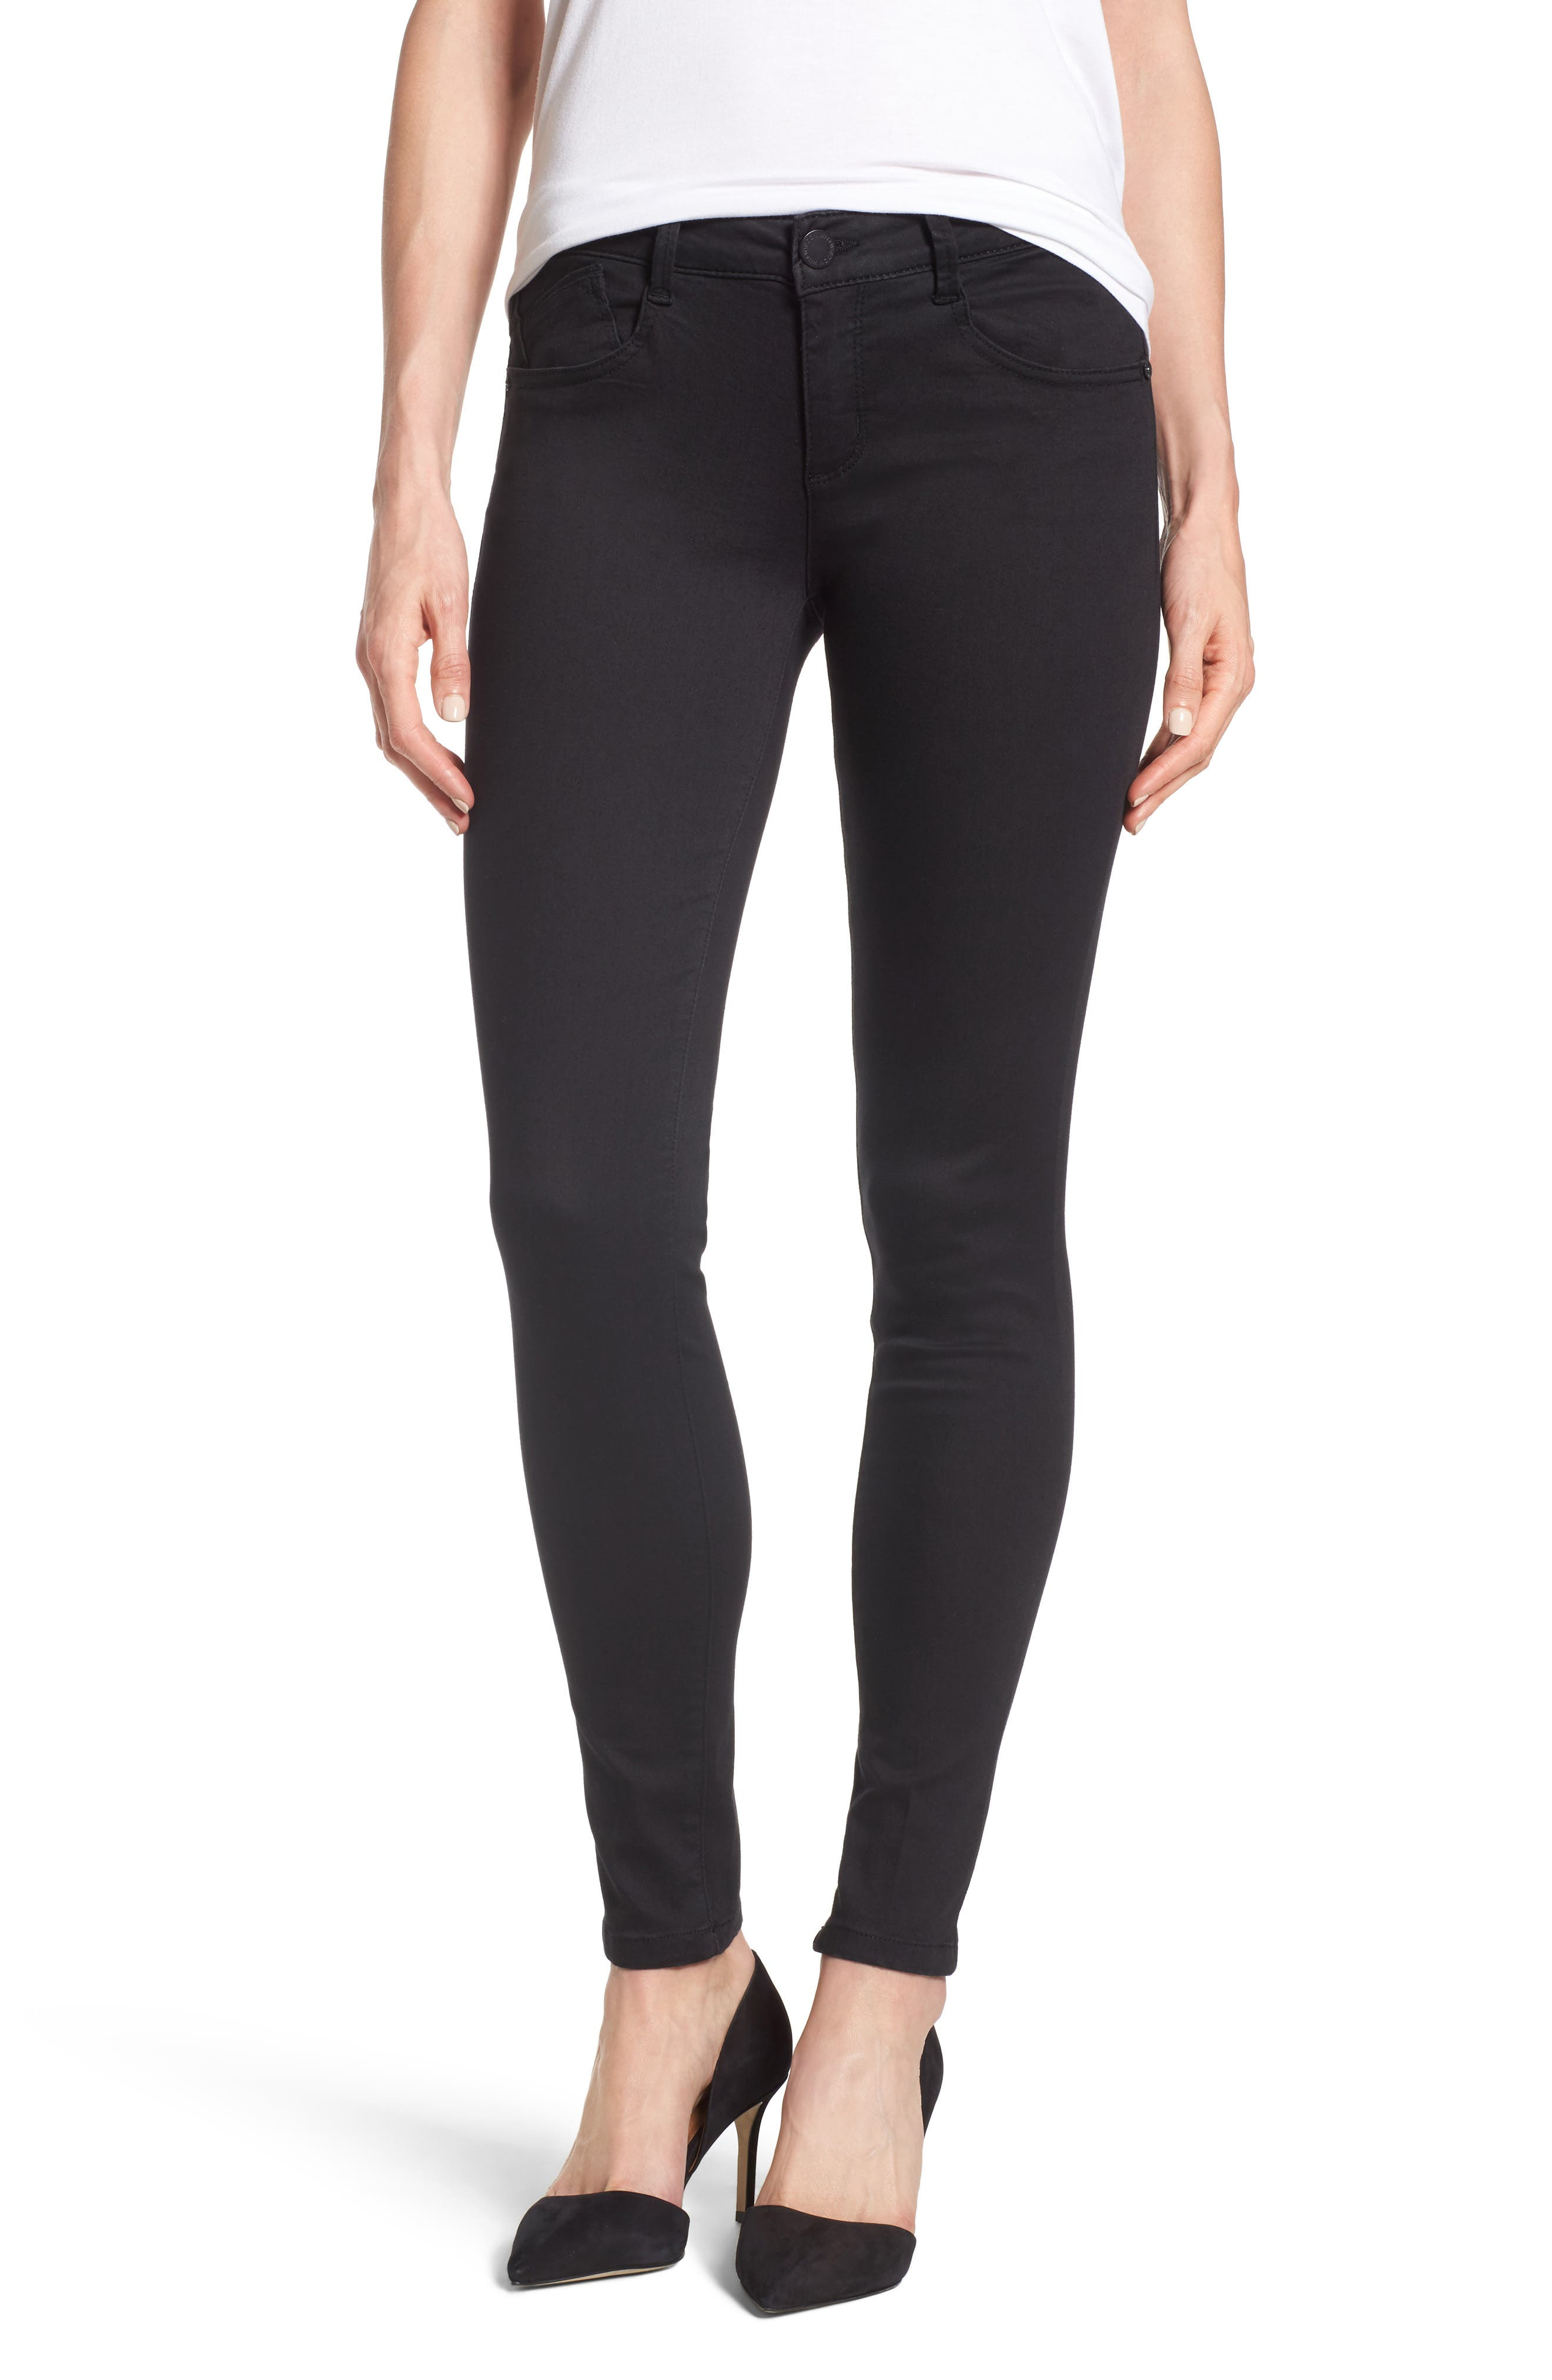 Alternate Image 1 Selected - Wit & Wisdom Skinny Jeans (Nordstrom Exclusive) (Regular & Petite)